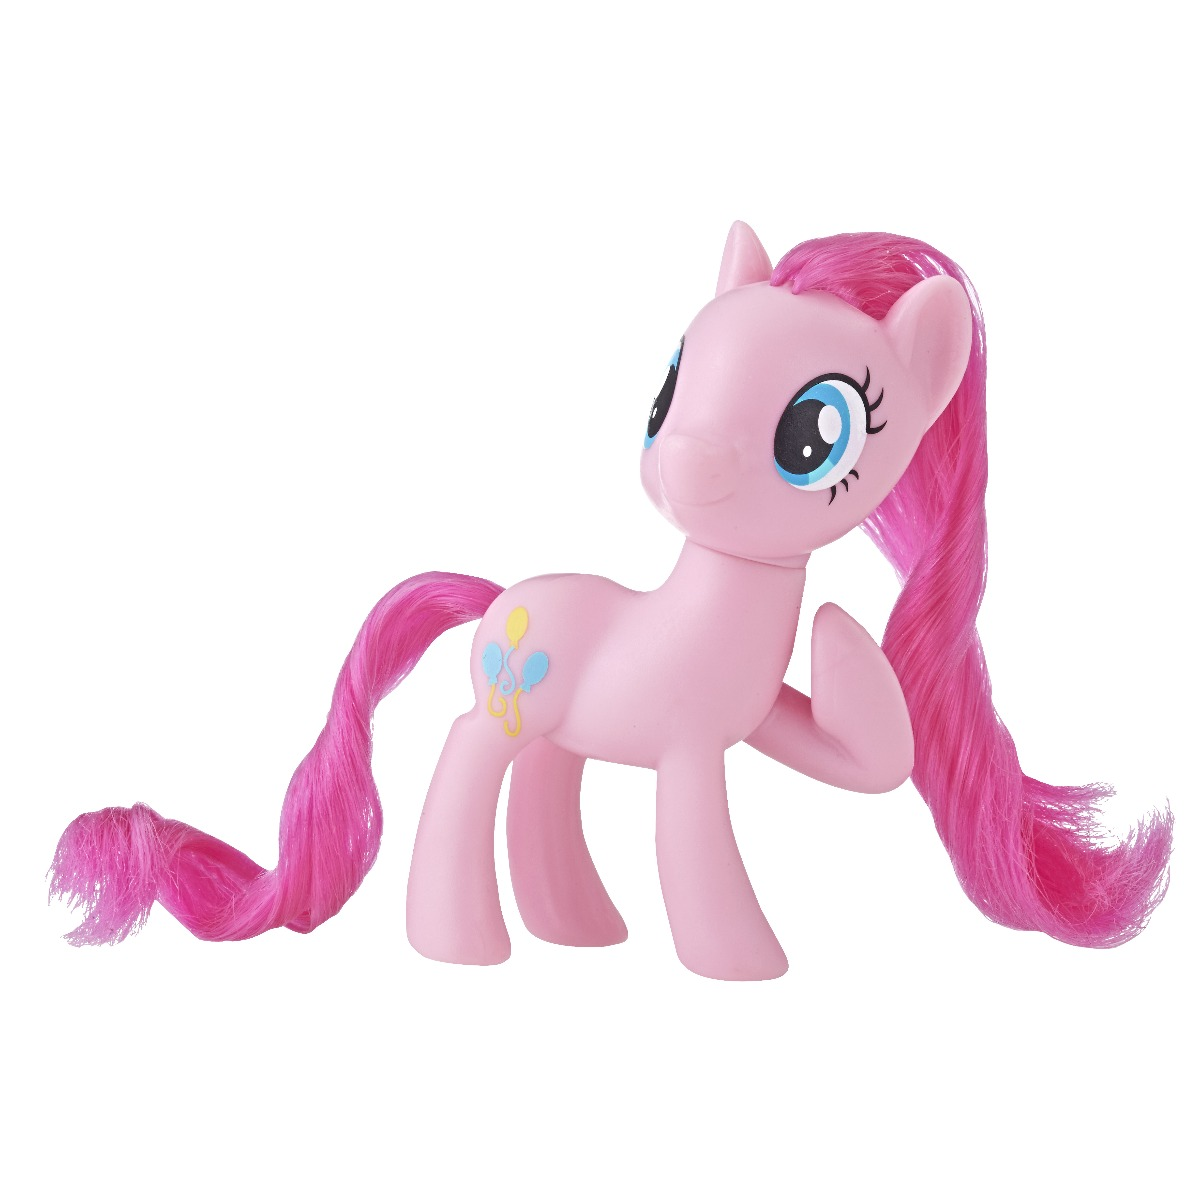 Figurina My Little Pony - Pinkie Pie, E5005